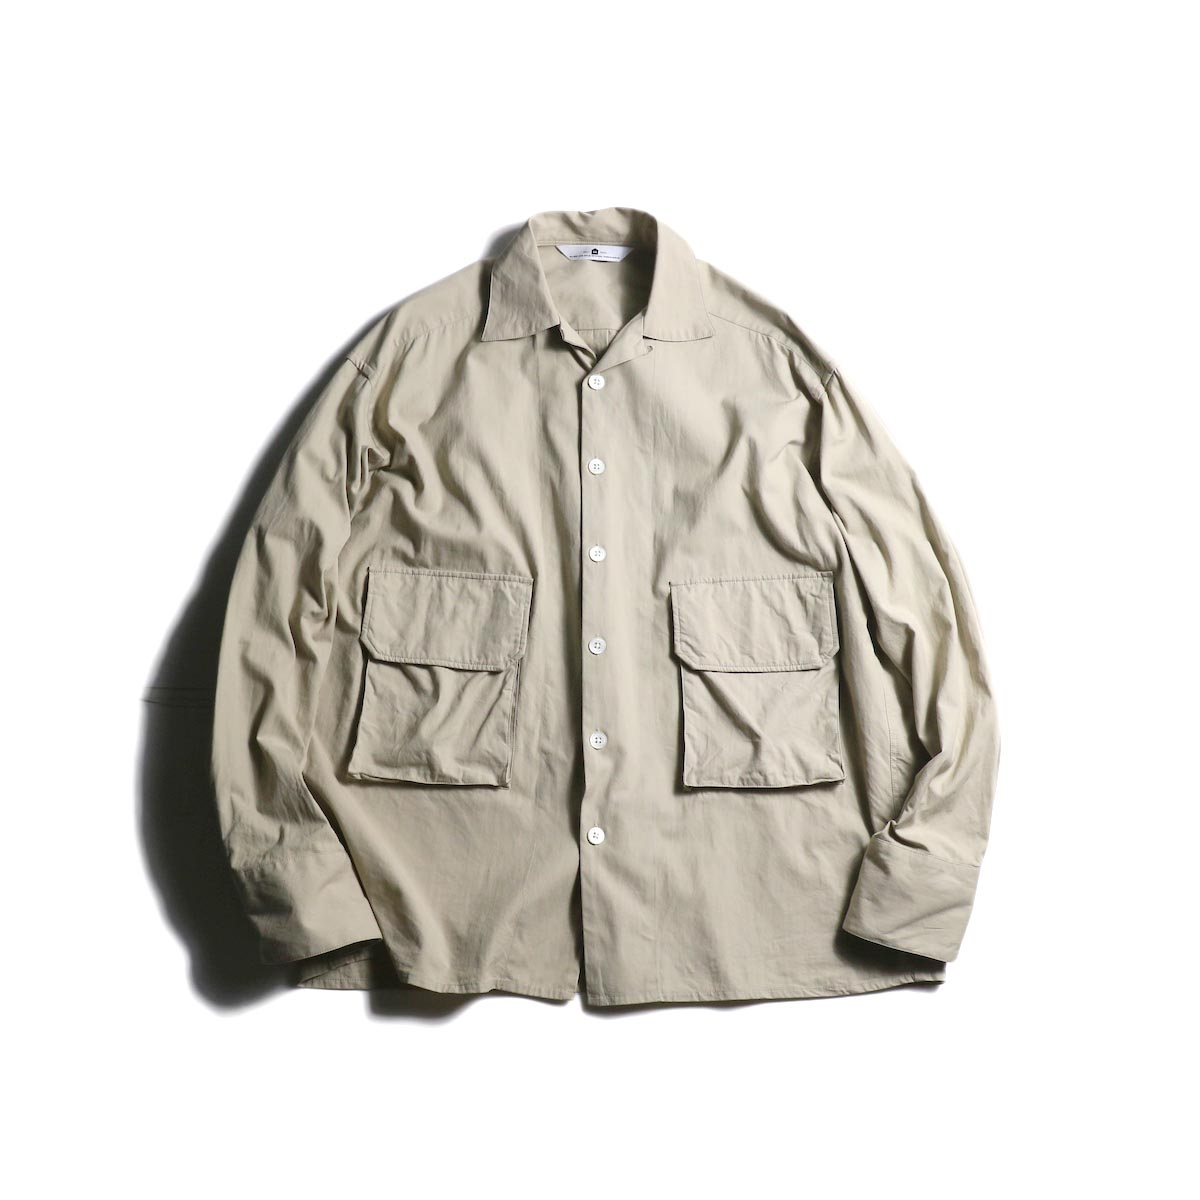 SGGM / Loop-top Shirt Flap Pocket (Beige Twill)